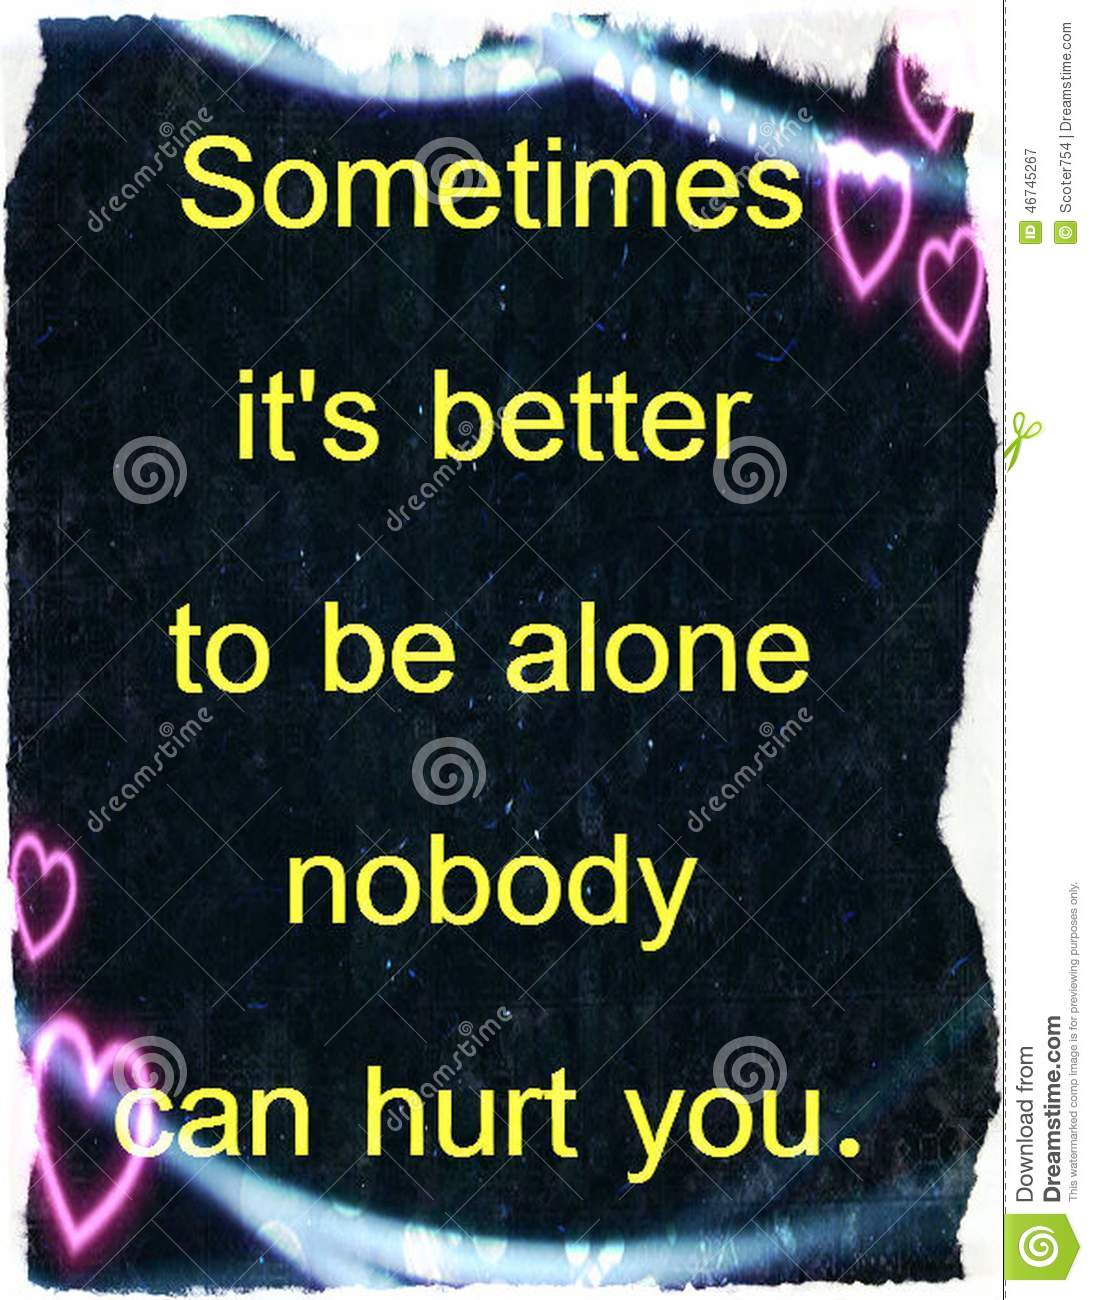 Quotes About Life Sometimes Its Better To Be Alone Nobody Can Hurt